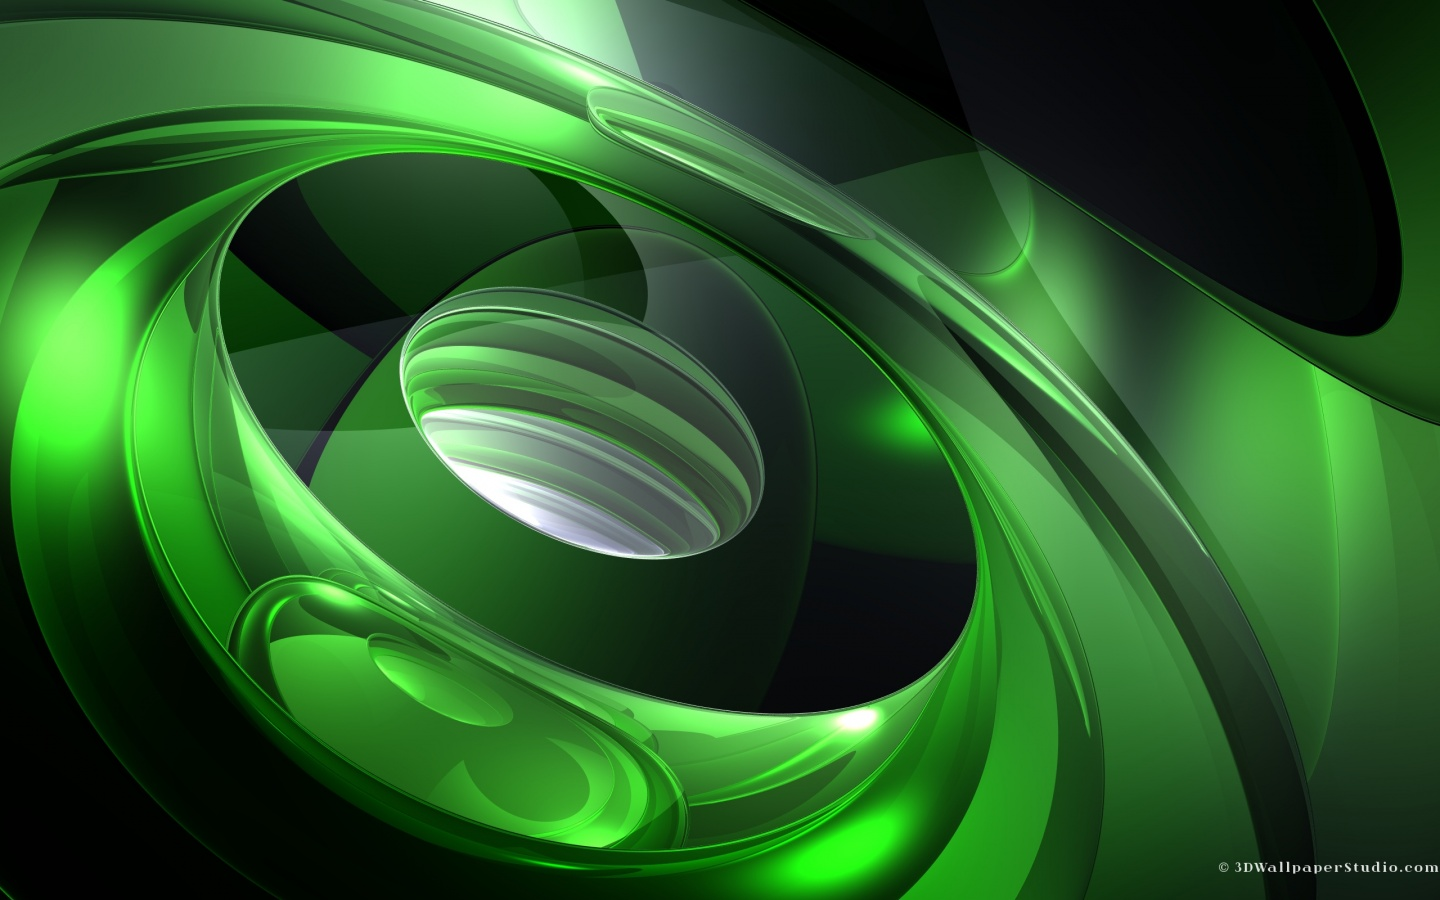 3D Wallpaper 3d abstract sound of green 1440 x 900 1440x900